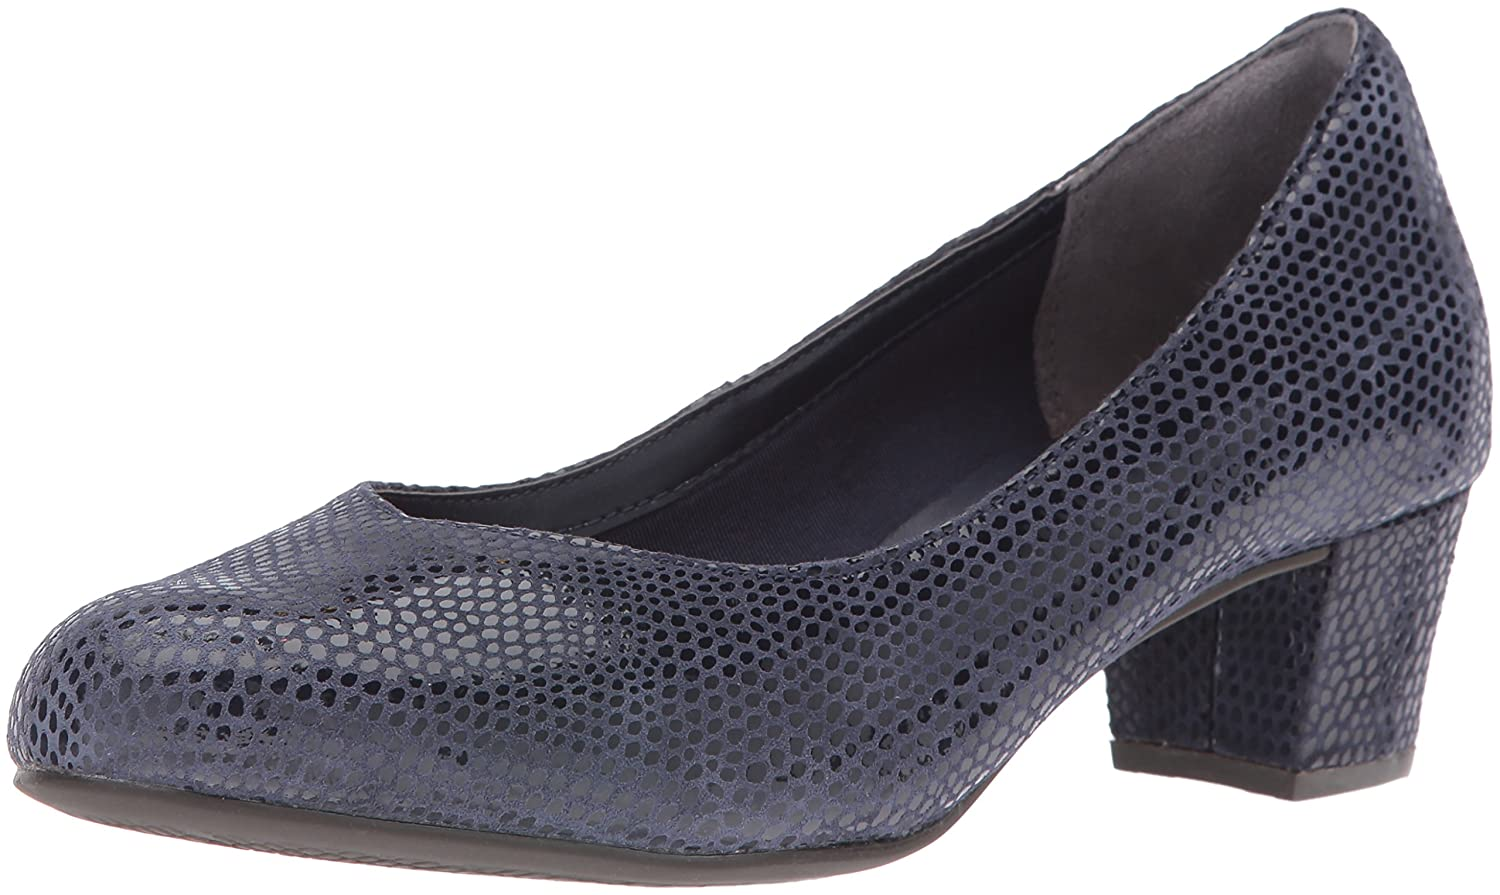 Rockport Women's Total Motion Charis Dress Pump B01ABRNUEO 10.5 B(M) US|Deep Ocean Mamba Snake